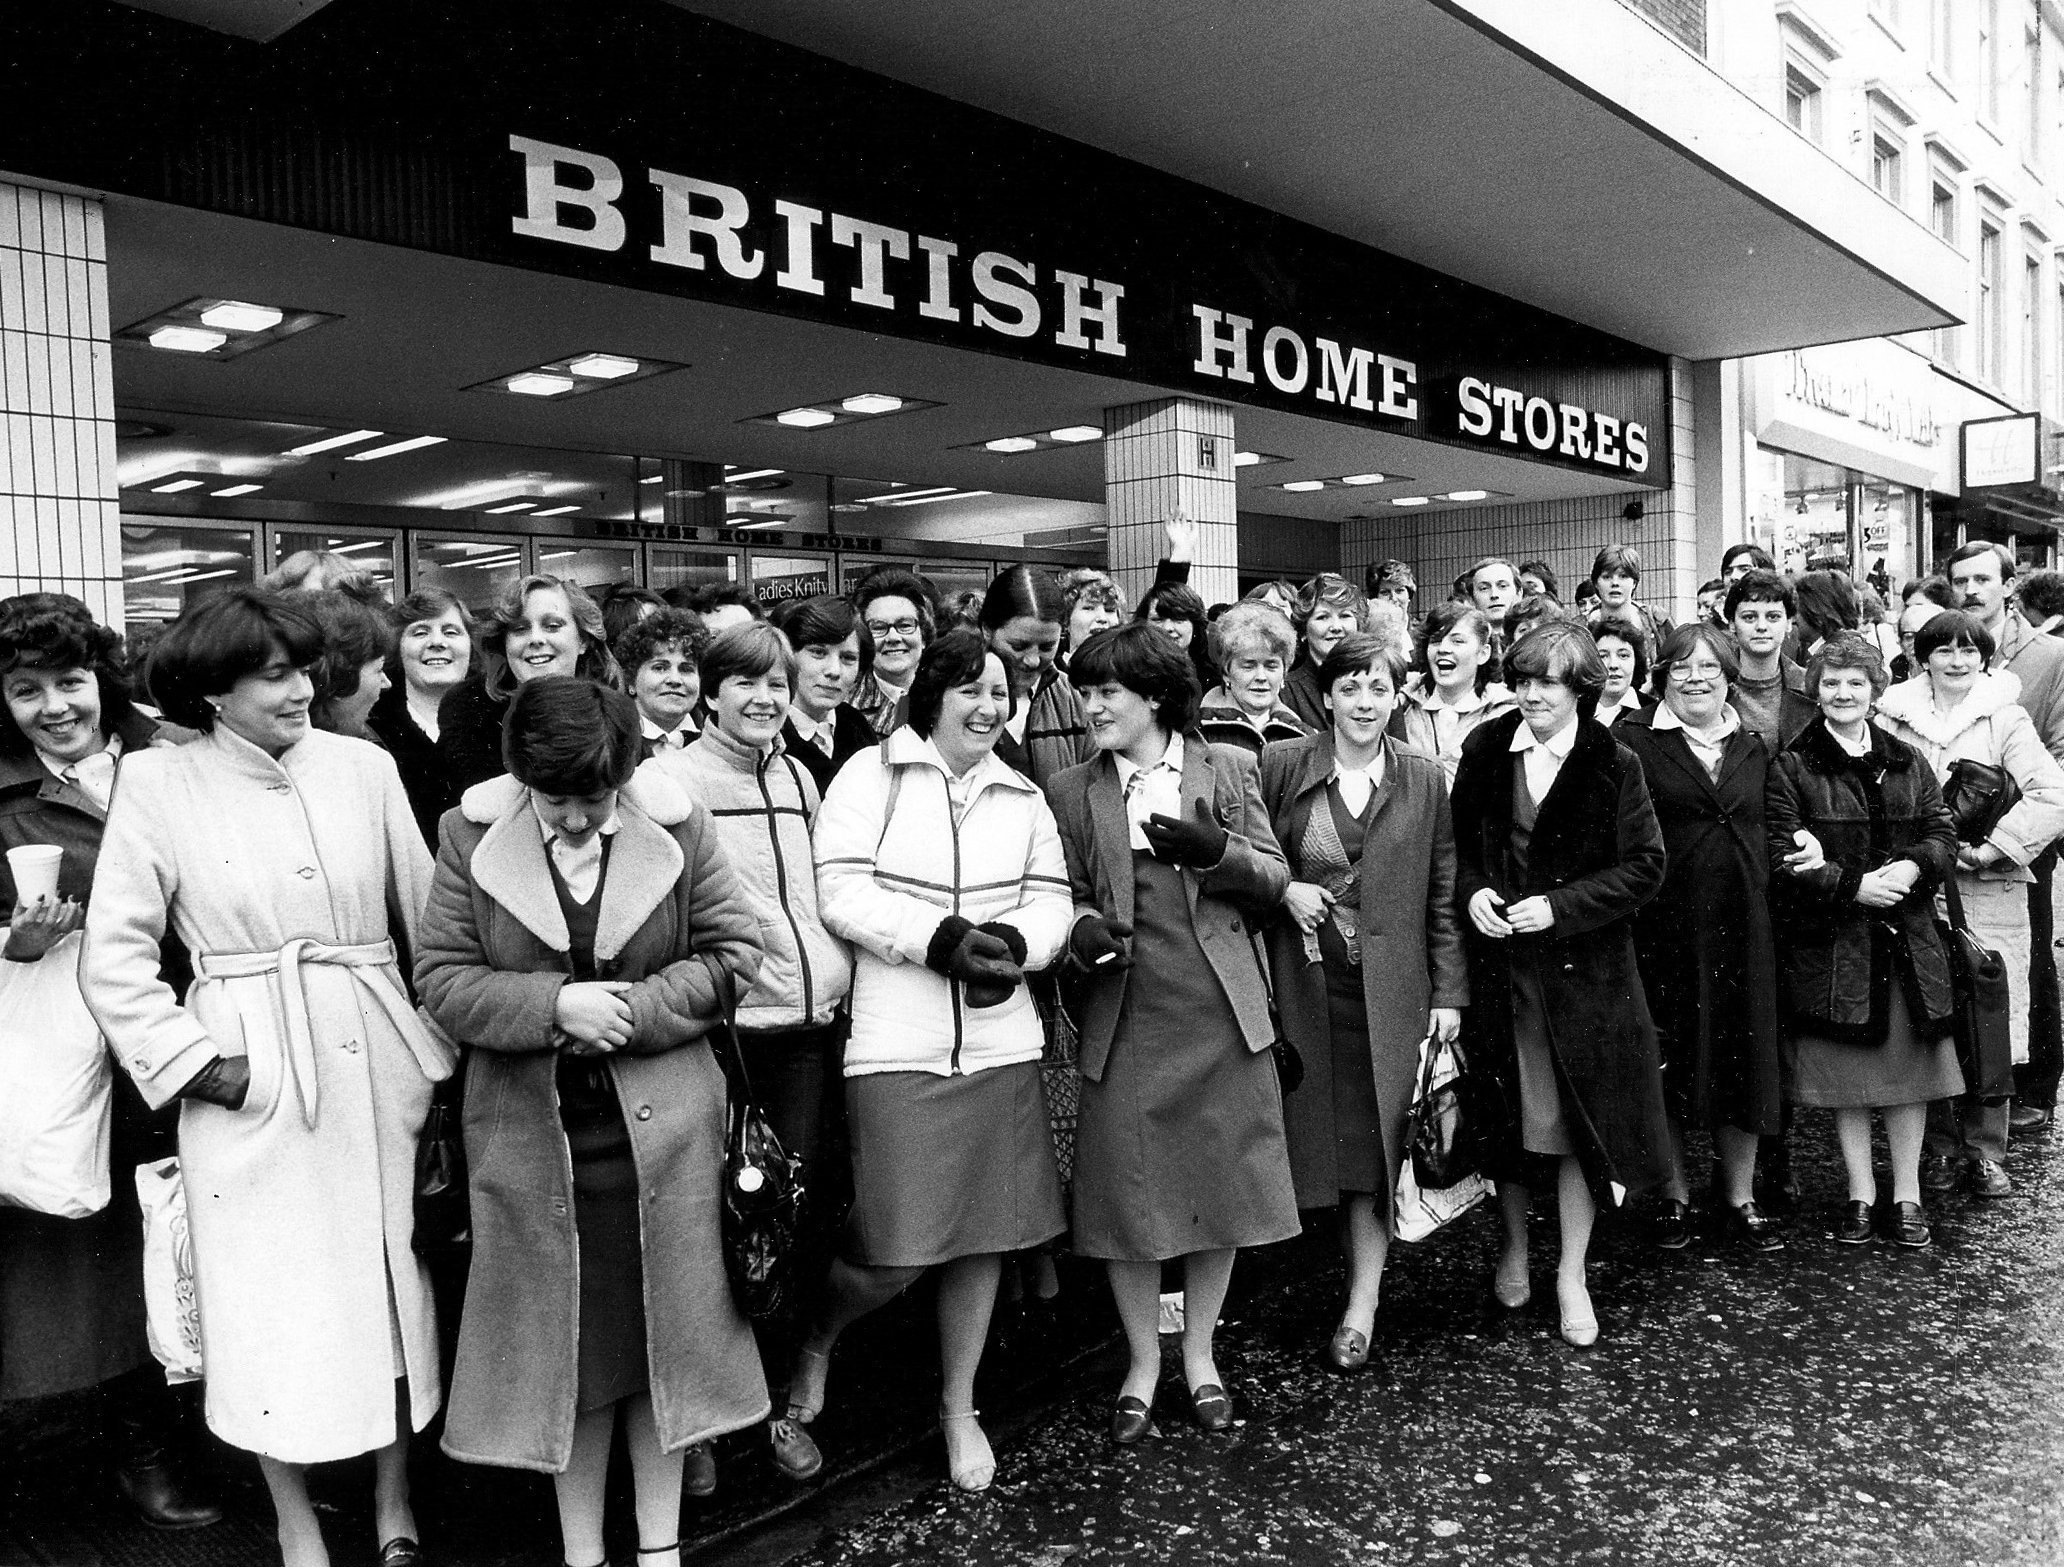 After 88 years on the UK's high streets BHS and its 11,000 staff face uncertainty